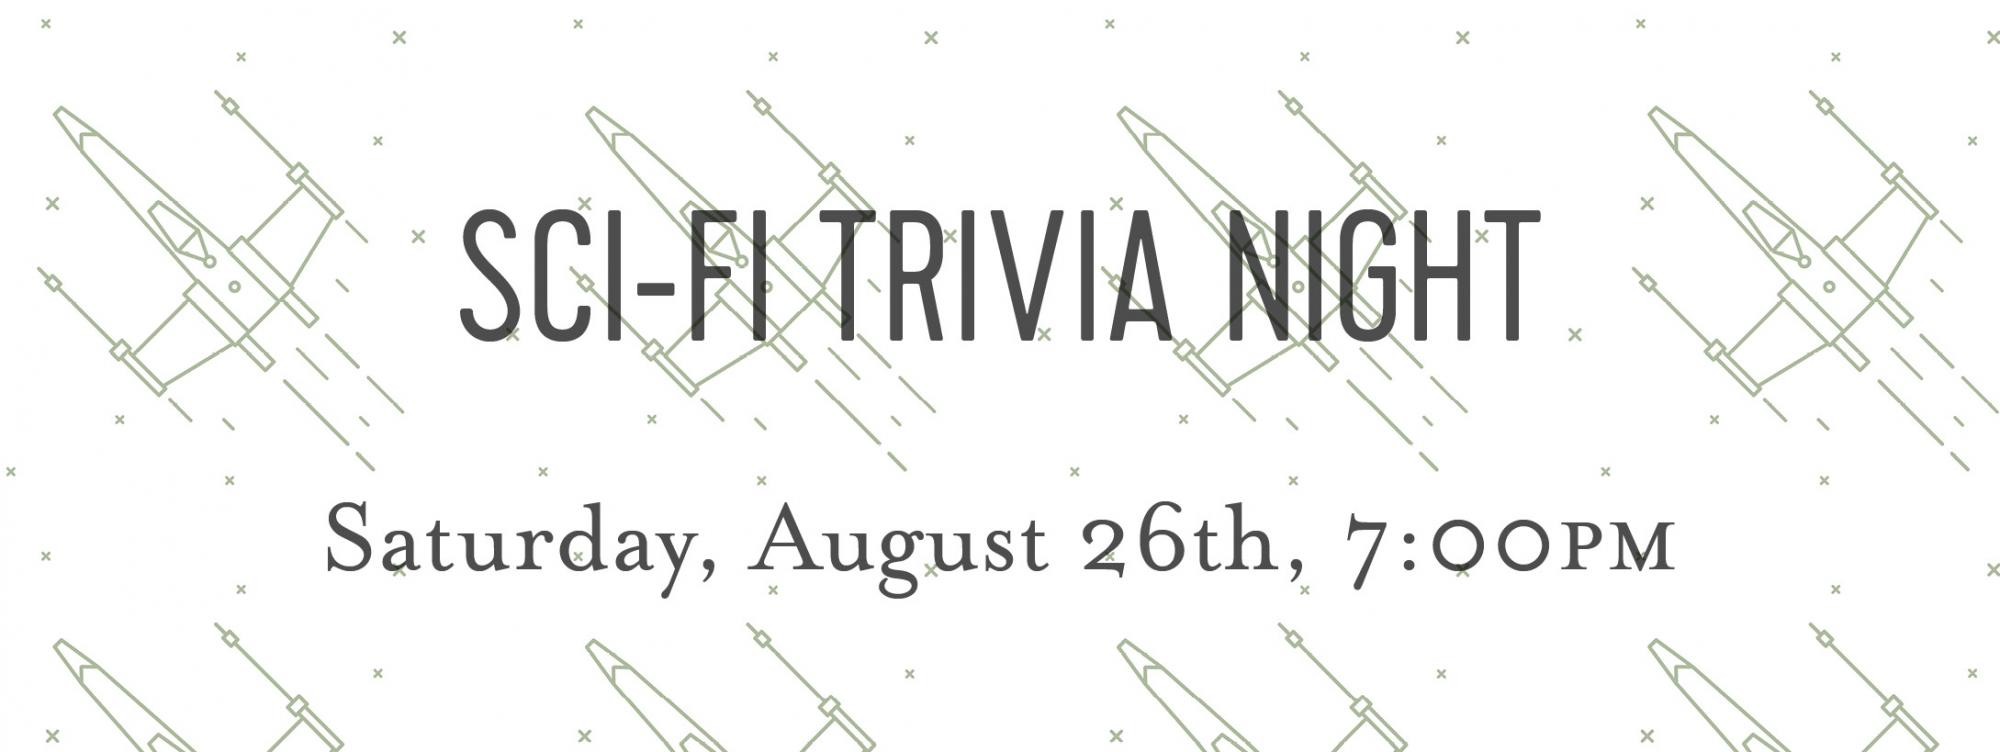 Adas featured events adas technical books friends of adas alex veronica will host a very exciting science fiction trivia night questions are sourced from books read in the classics of science fandeluxe Gallery